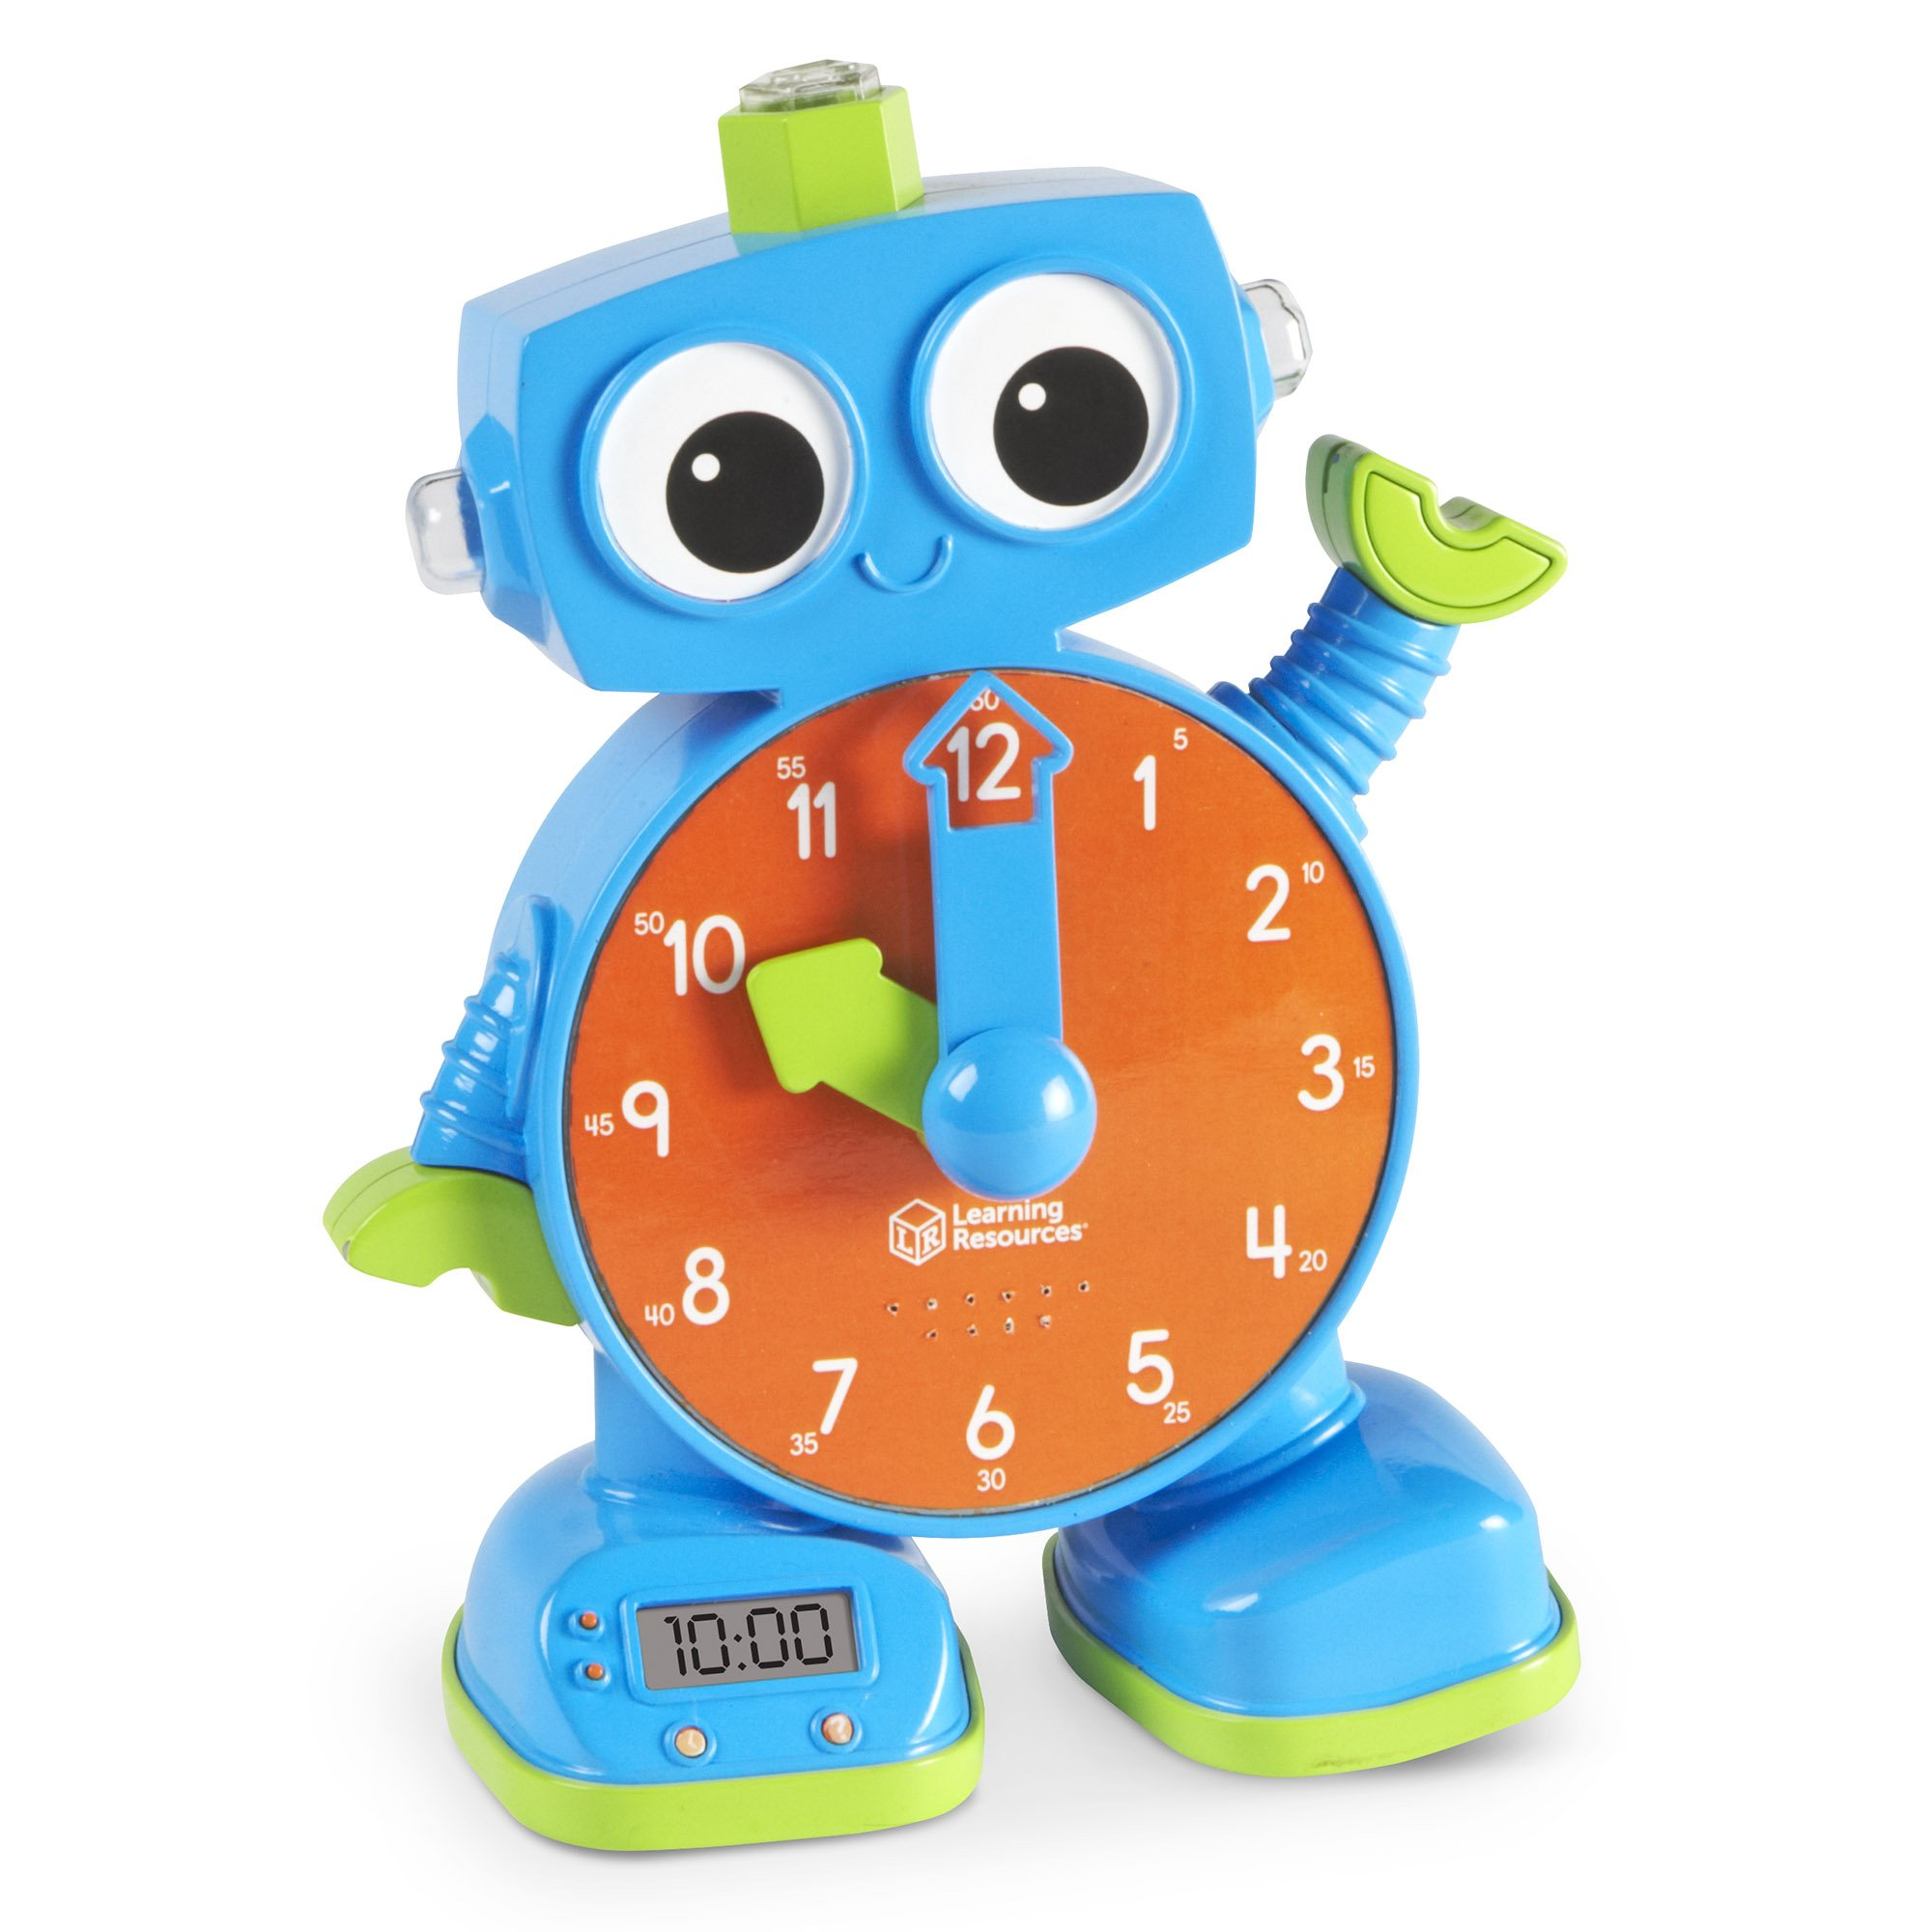 Learning Resources Tock The Learning Clock Toy, Multicolor